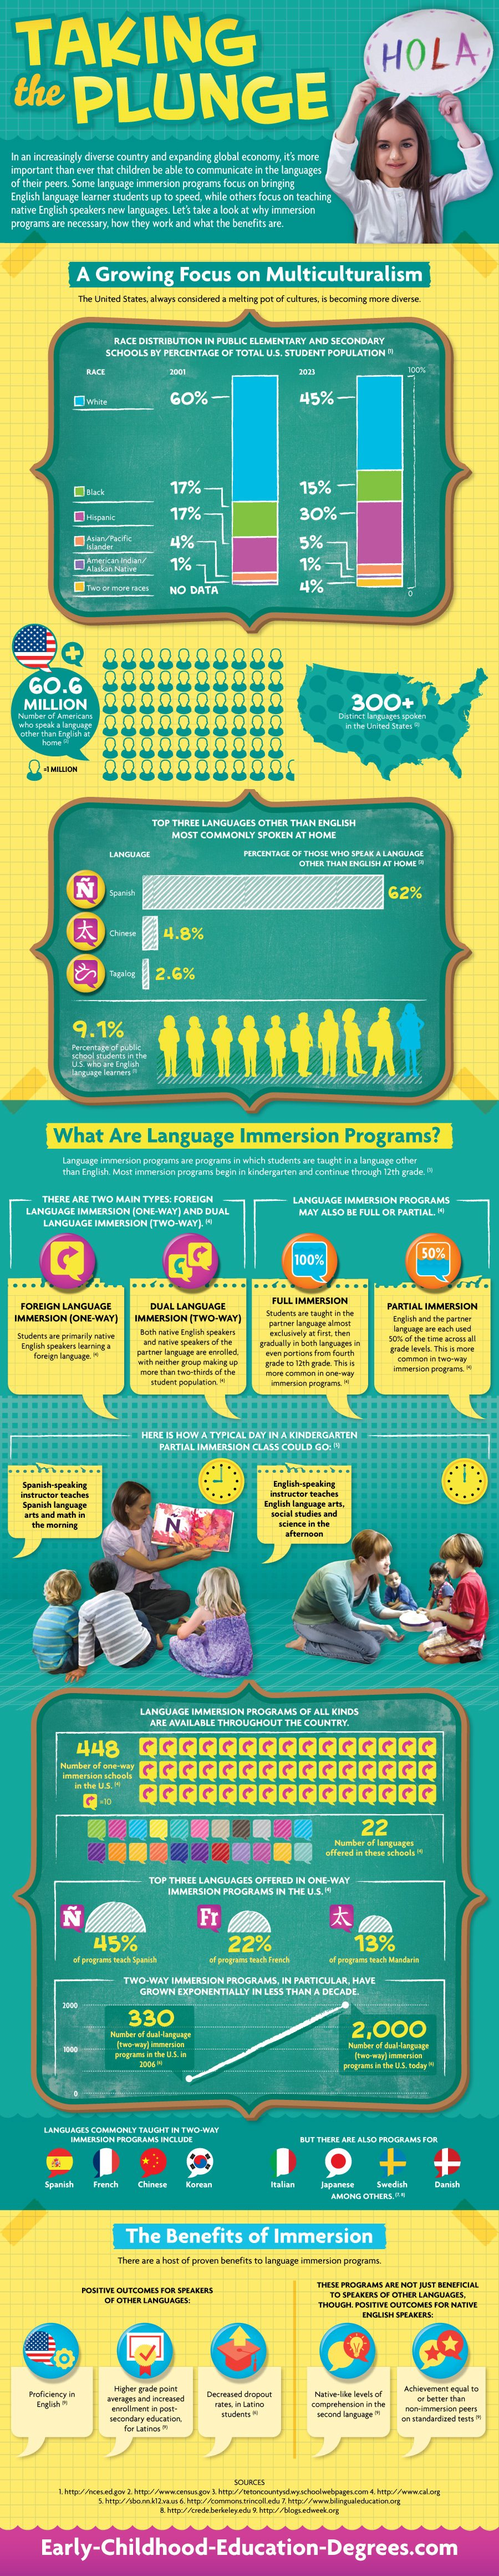 immersion-programs